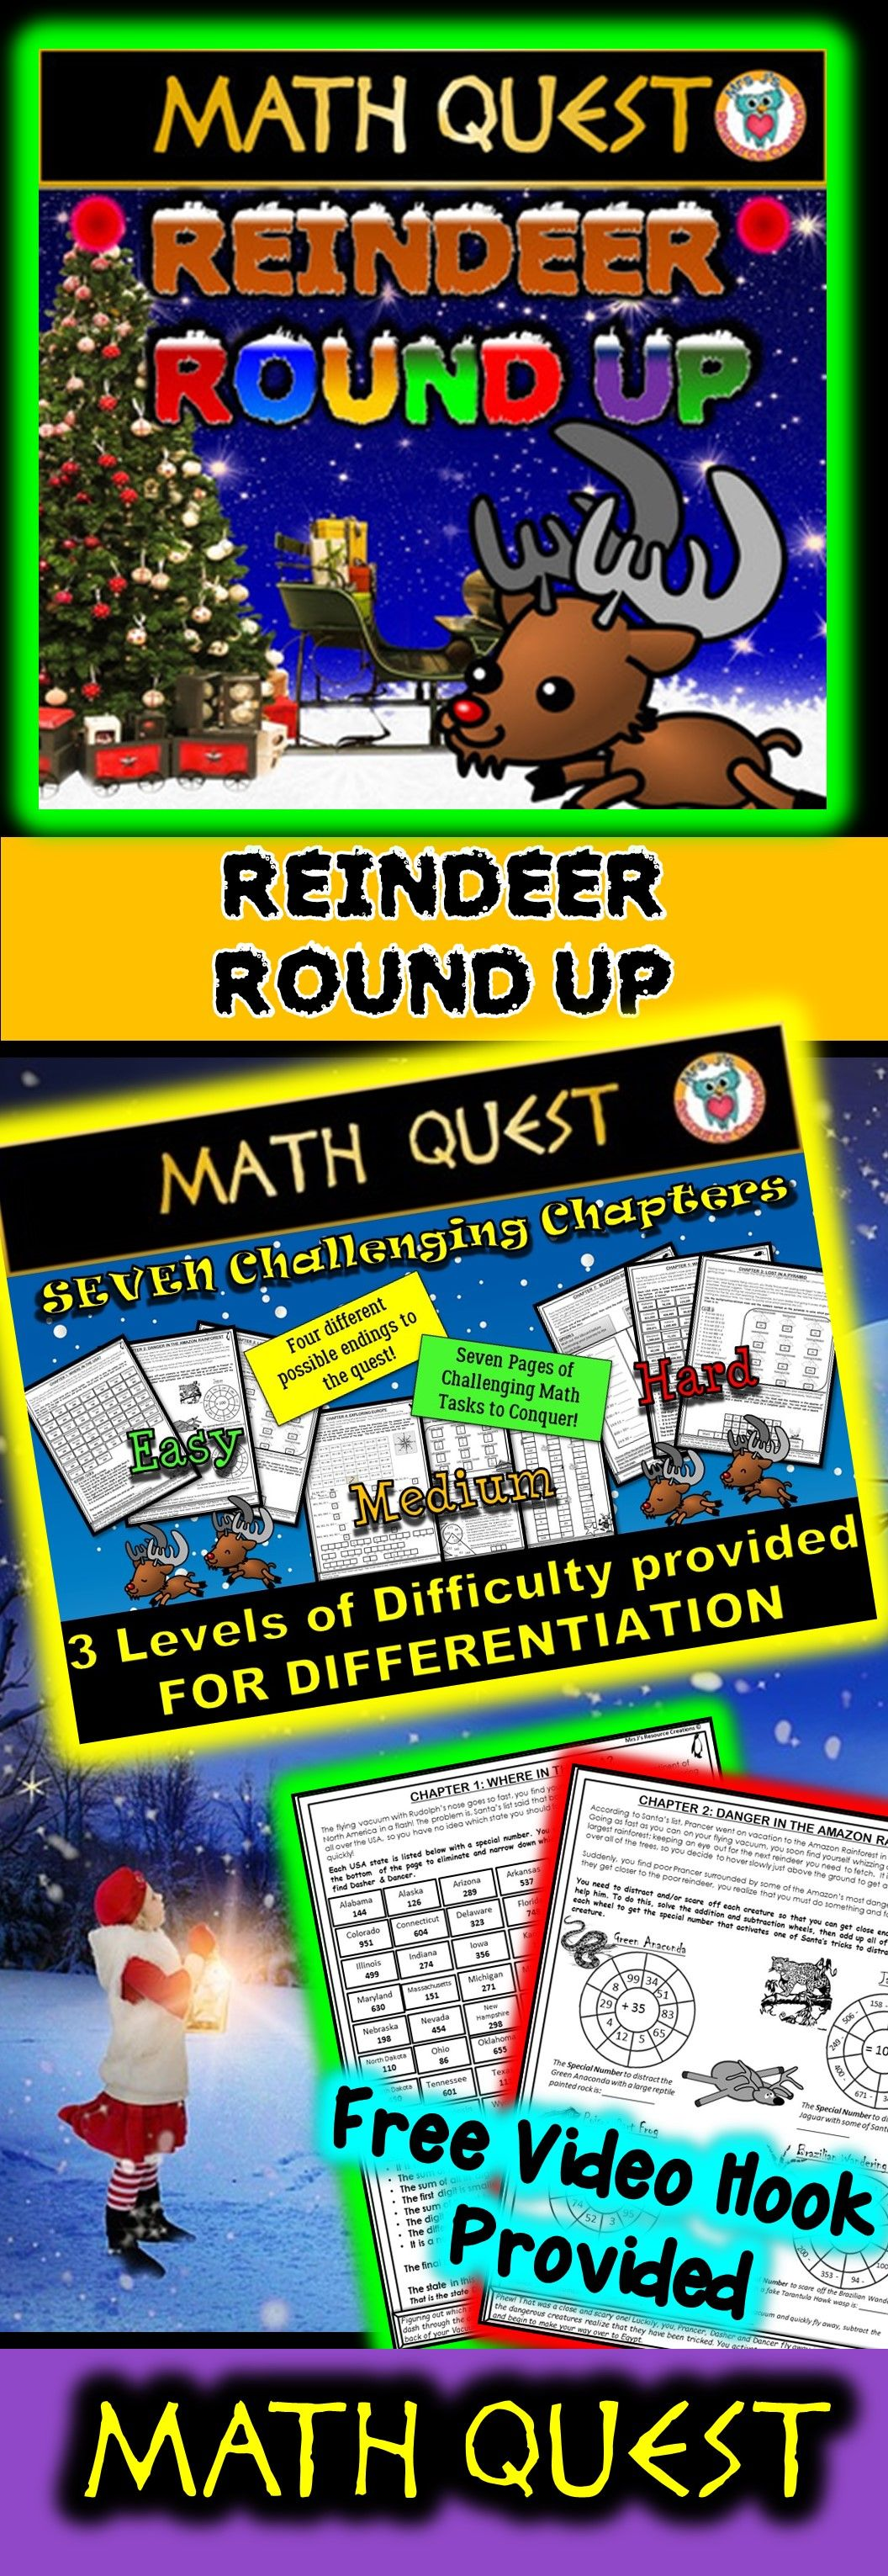 Christmas Math Quest Differentiated Levels Provided